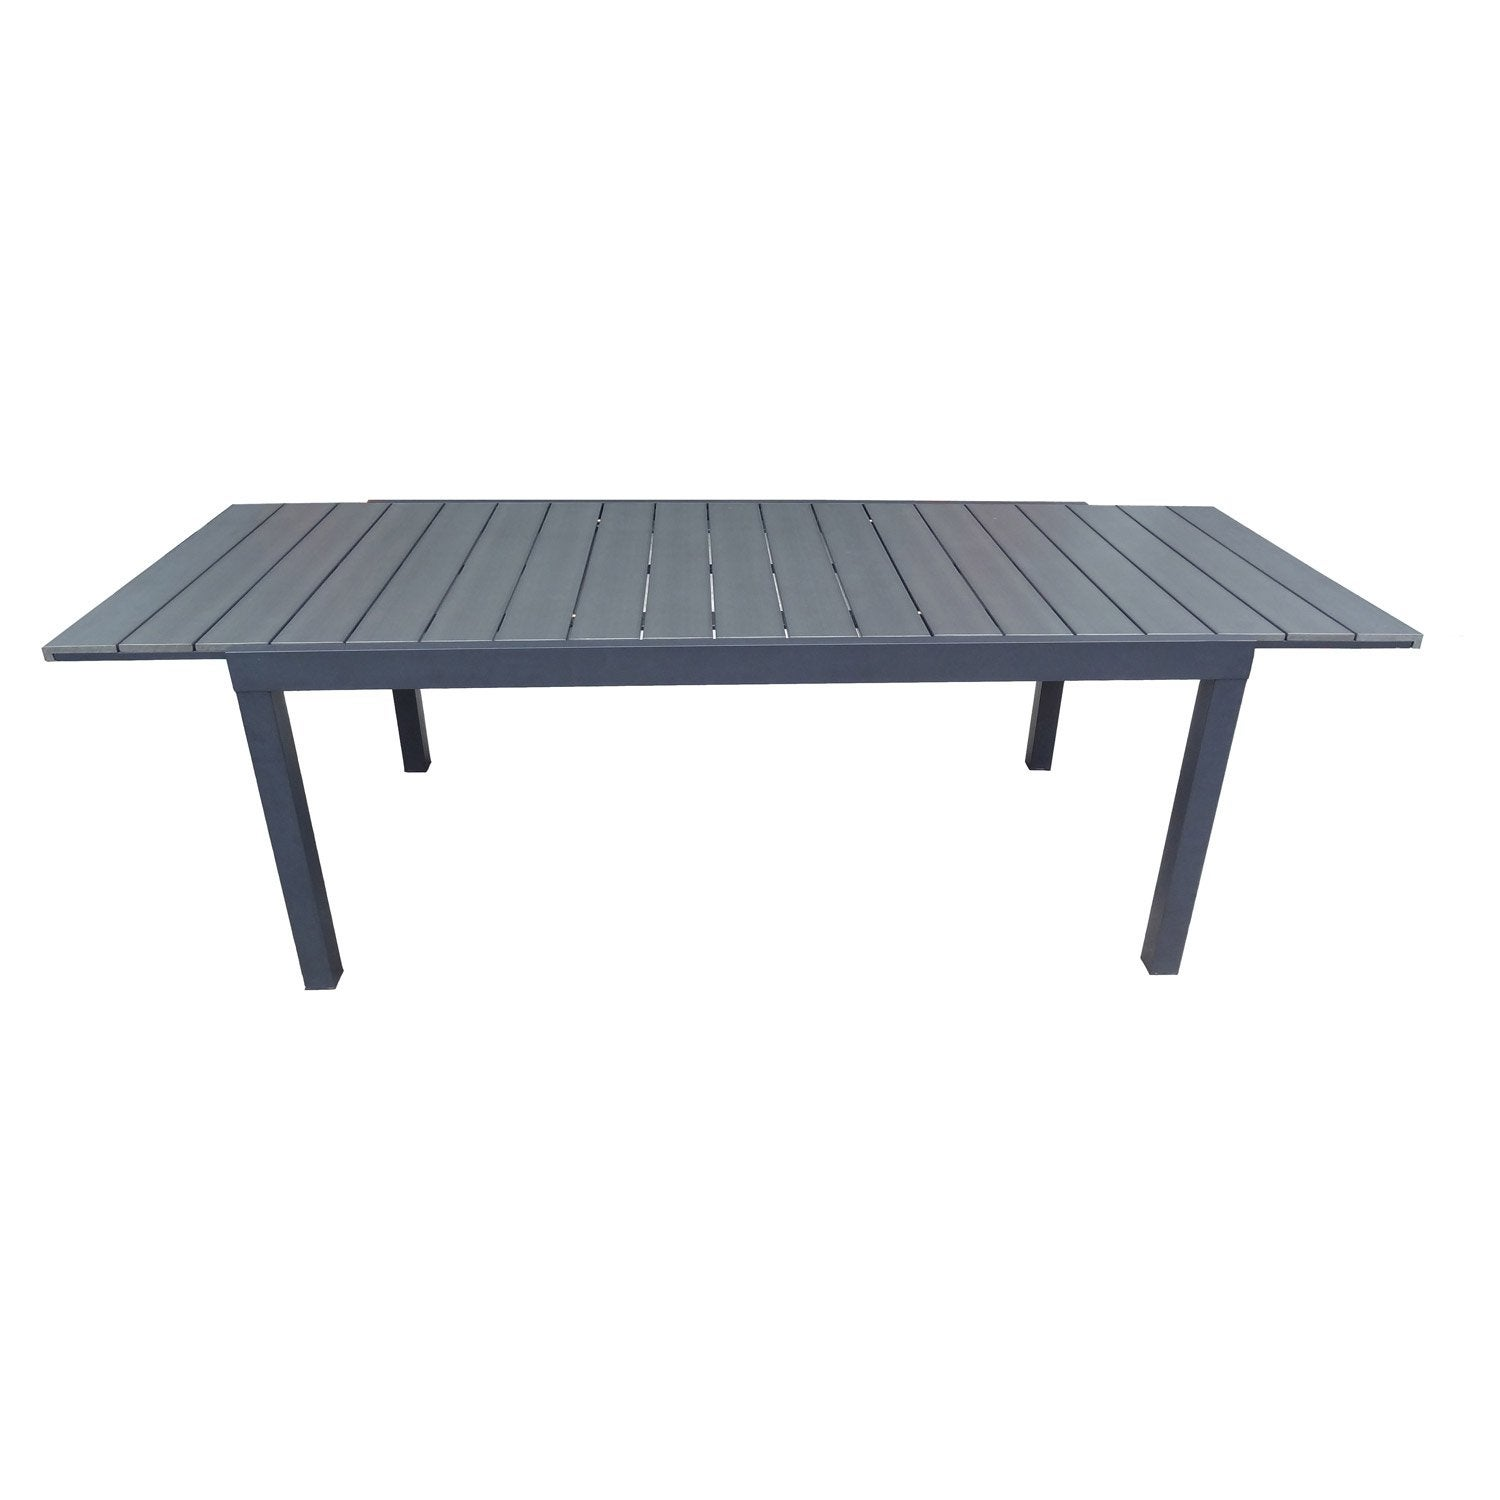 Table de jardin naterial pratt rectangulaire gris leroy for Table en aluminium exterieur